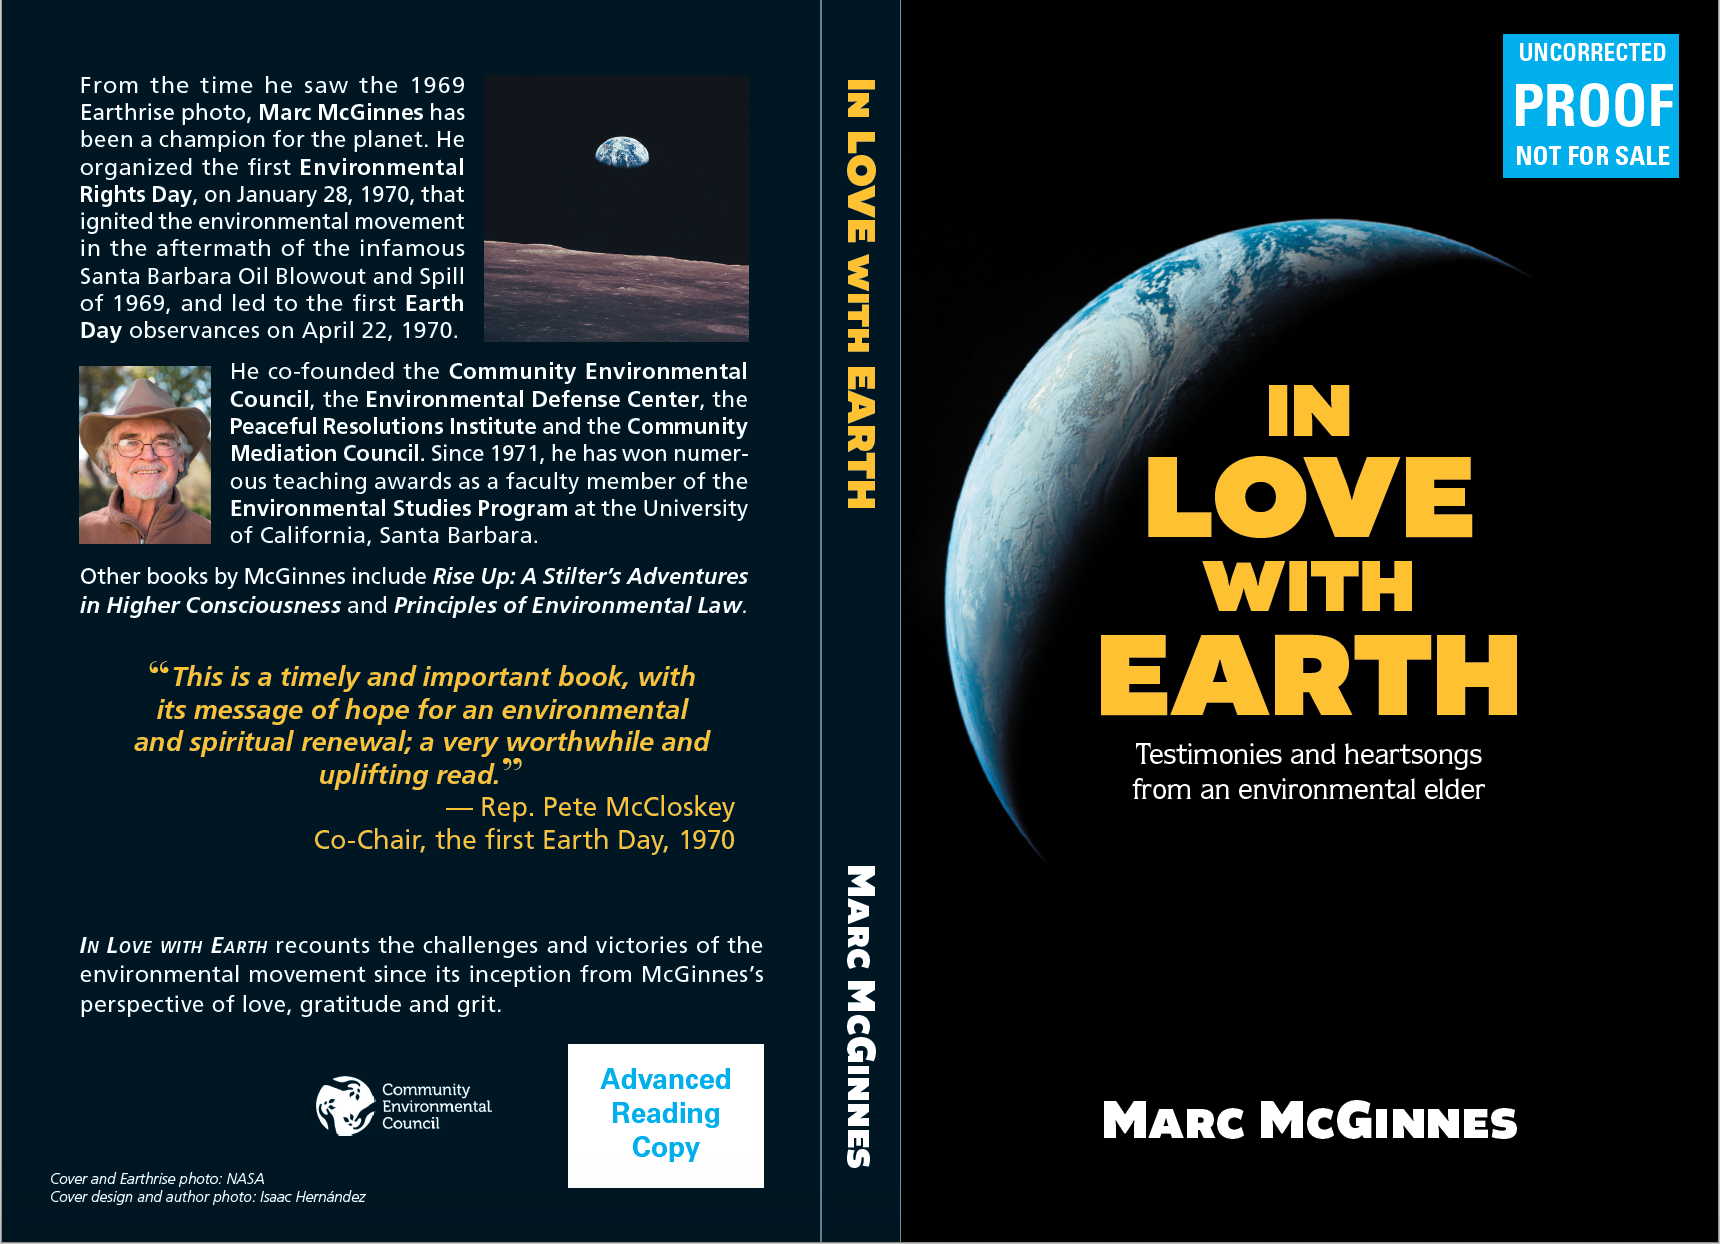 In_Love_with_Earth_ARC_Cover_2018-11-17.png